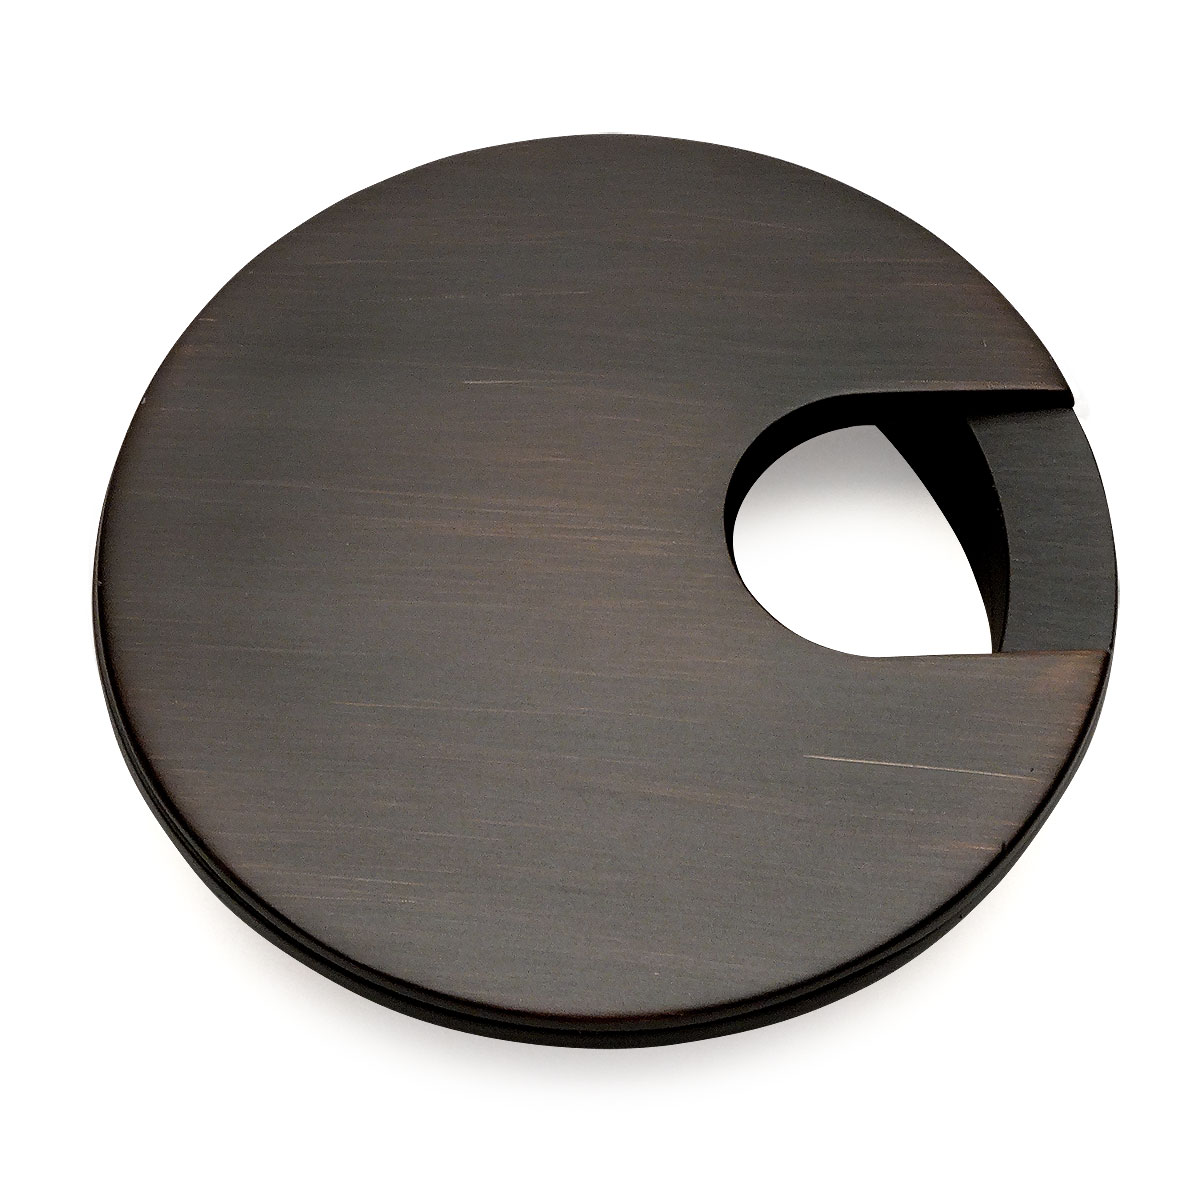 Cosmas 50203orb Oil Rubbed Bronze Desk Grommet